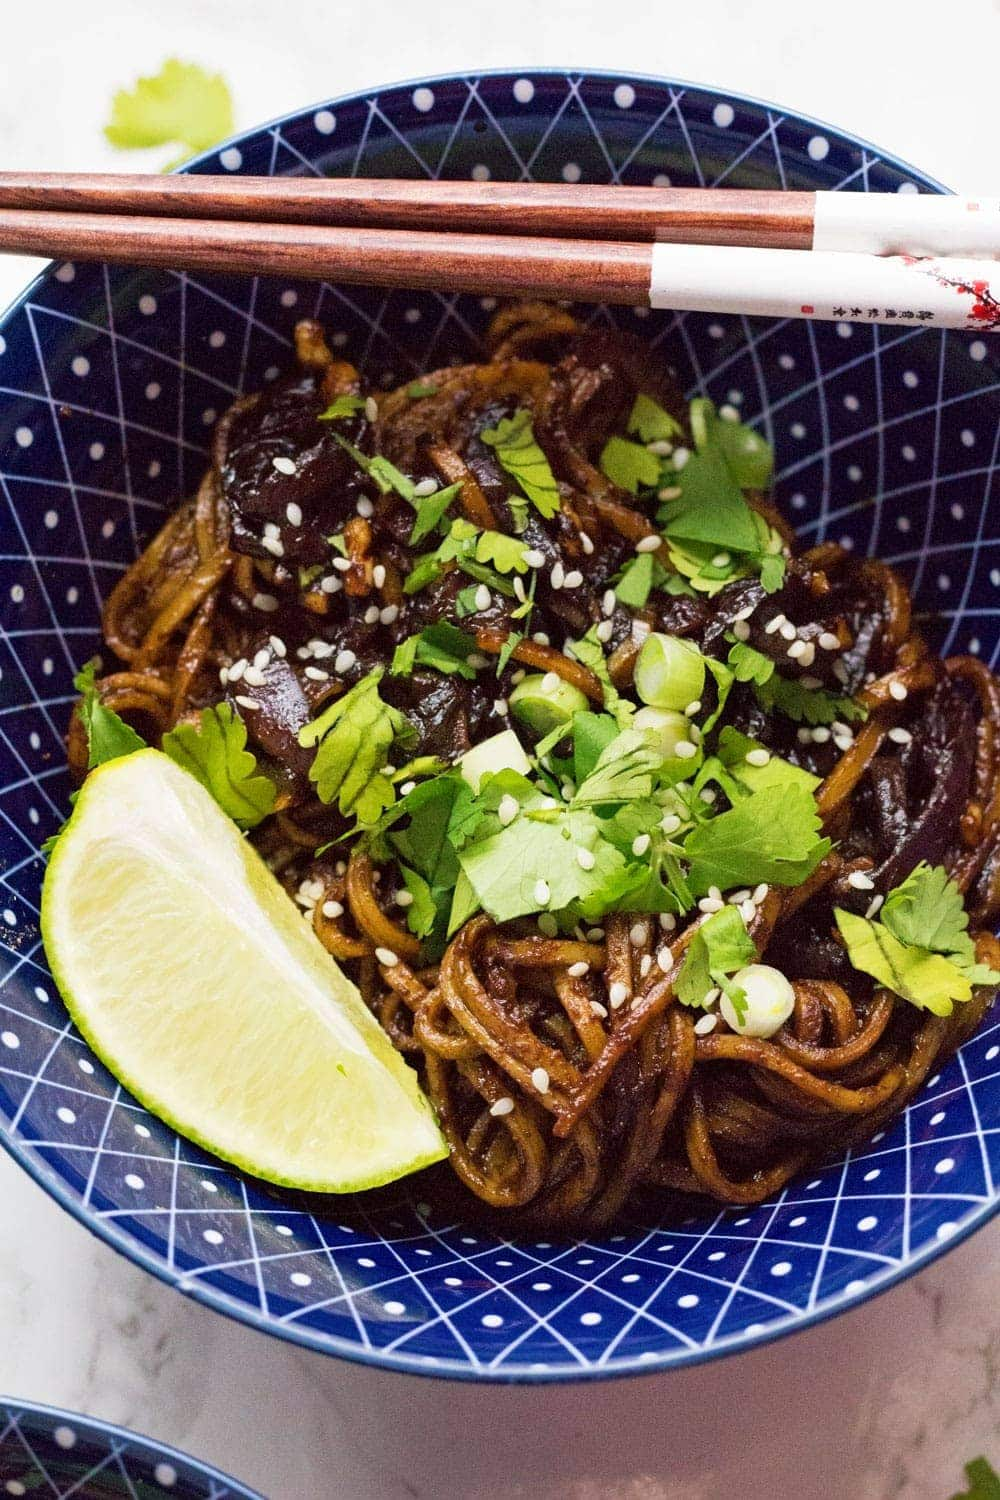 These soy peanut noodles are ridiculously easy to make and are on the table in 15 minutes! Even better, you'll probably already have most of the ingredients on hand